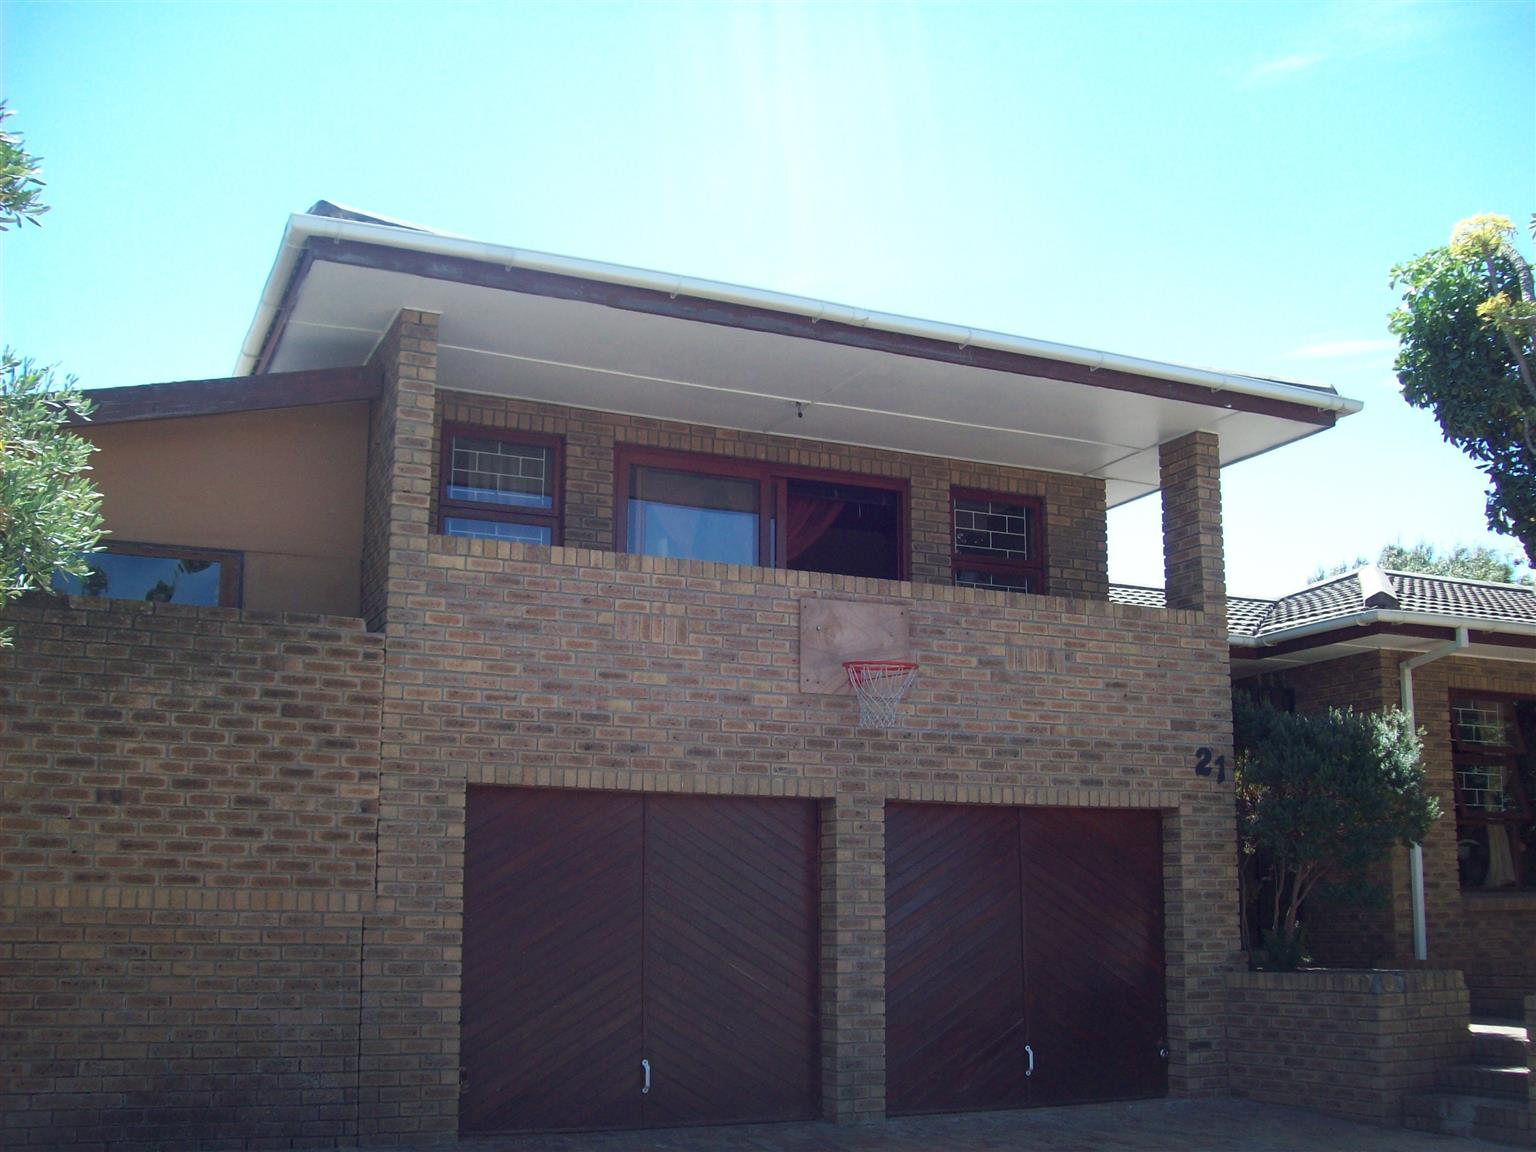 STELLENRIDGE, BELVILLE, 5 BEDROOMS, 3 BATHROOMS WITH OUTSIDE ROOM